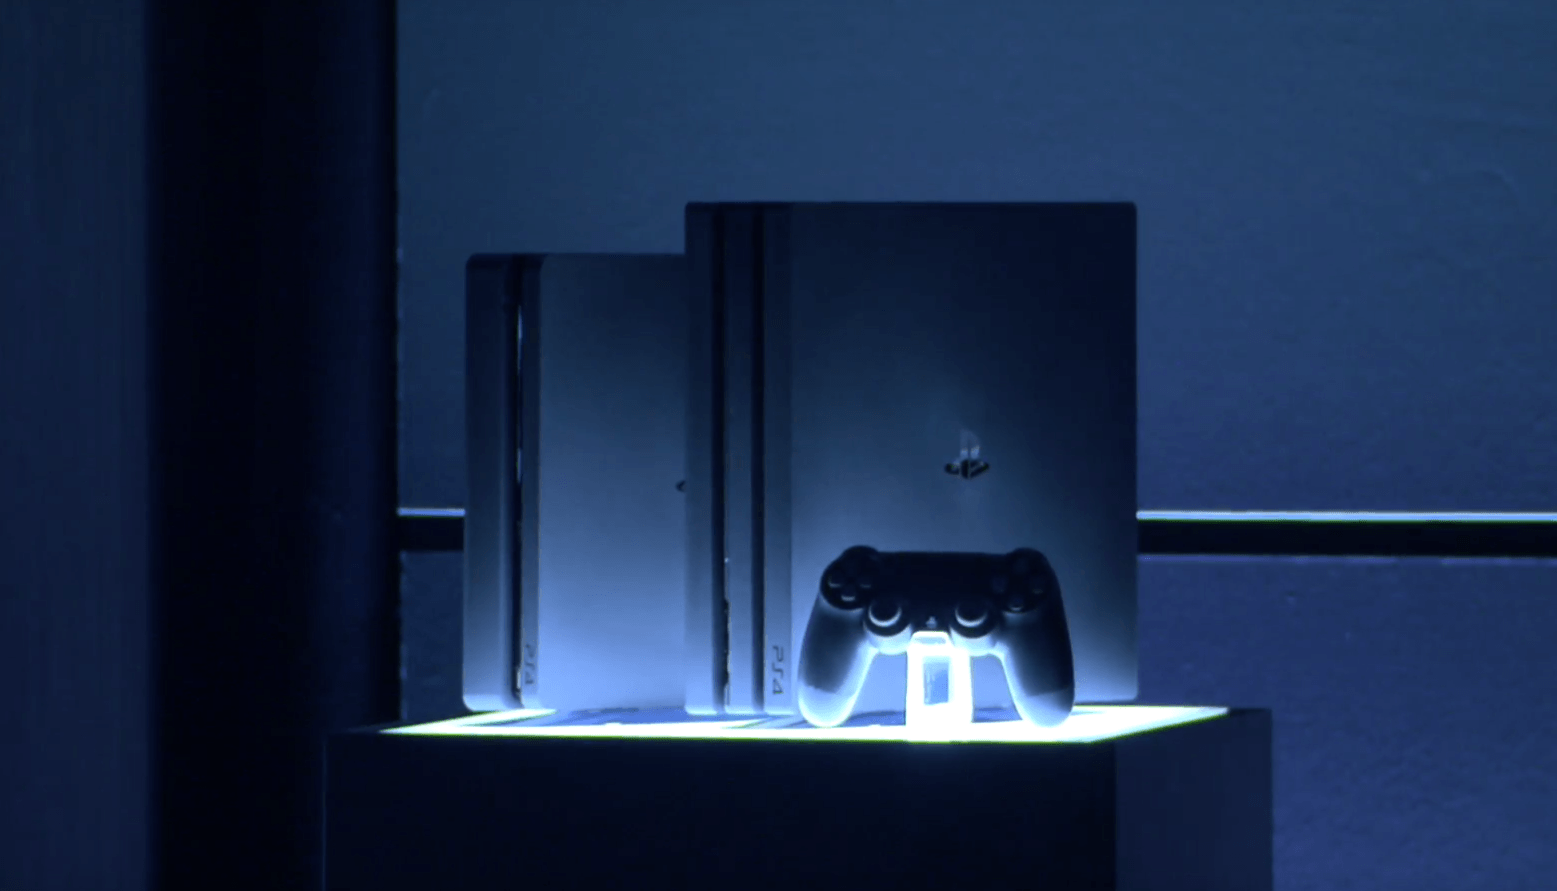 PlayStation 4 Pro Temps Max Out At An Impressive 35°C 1